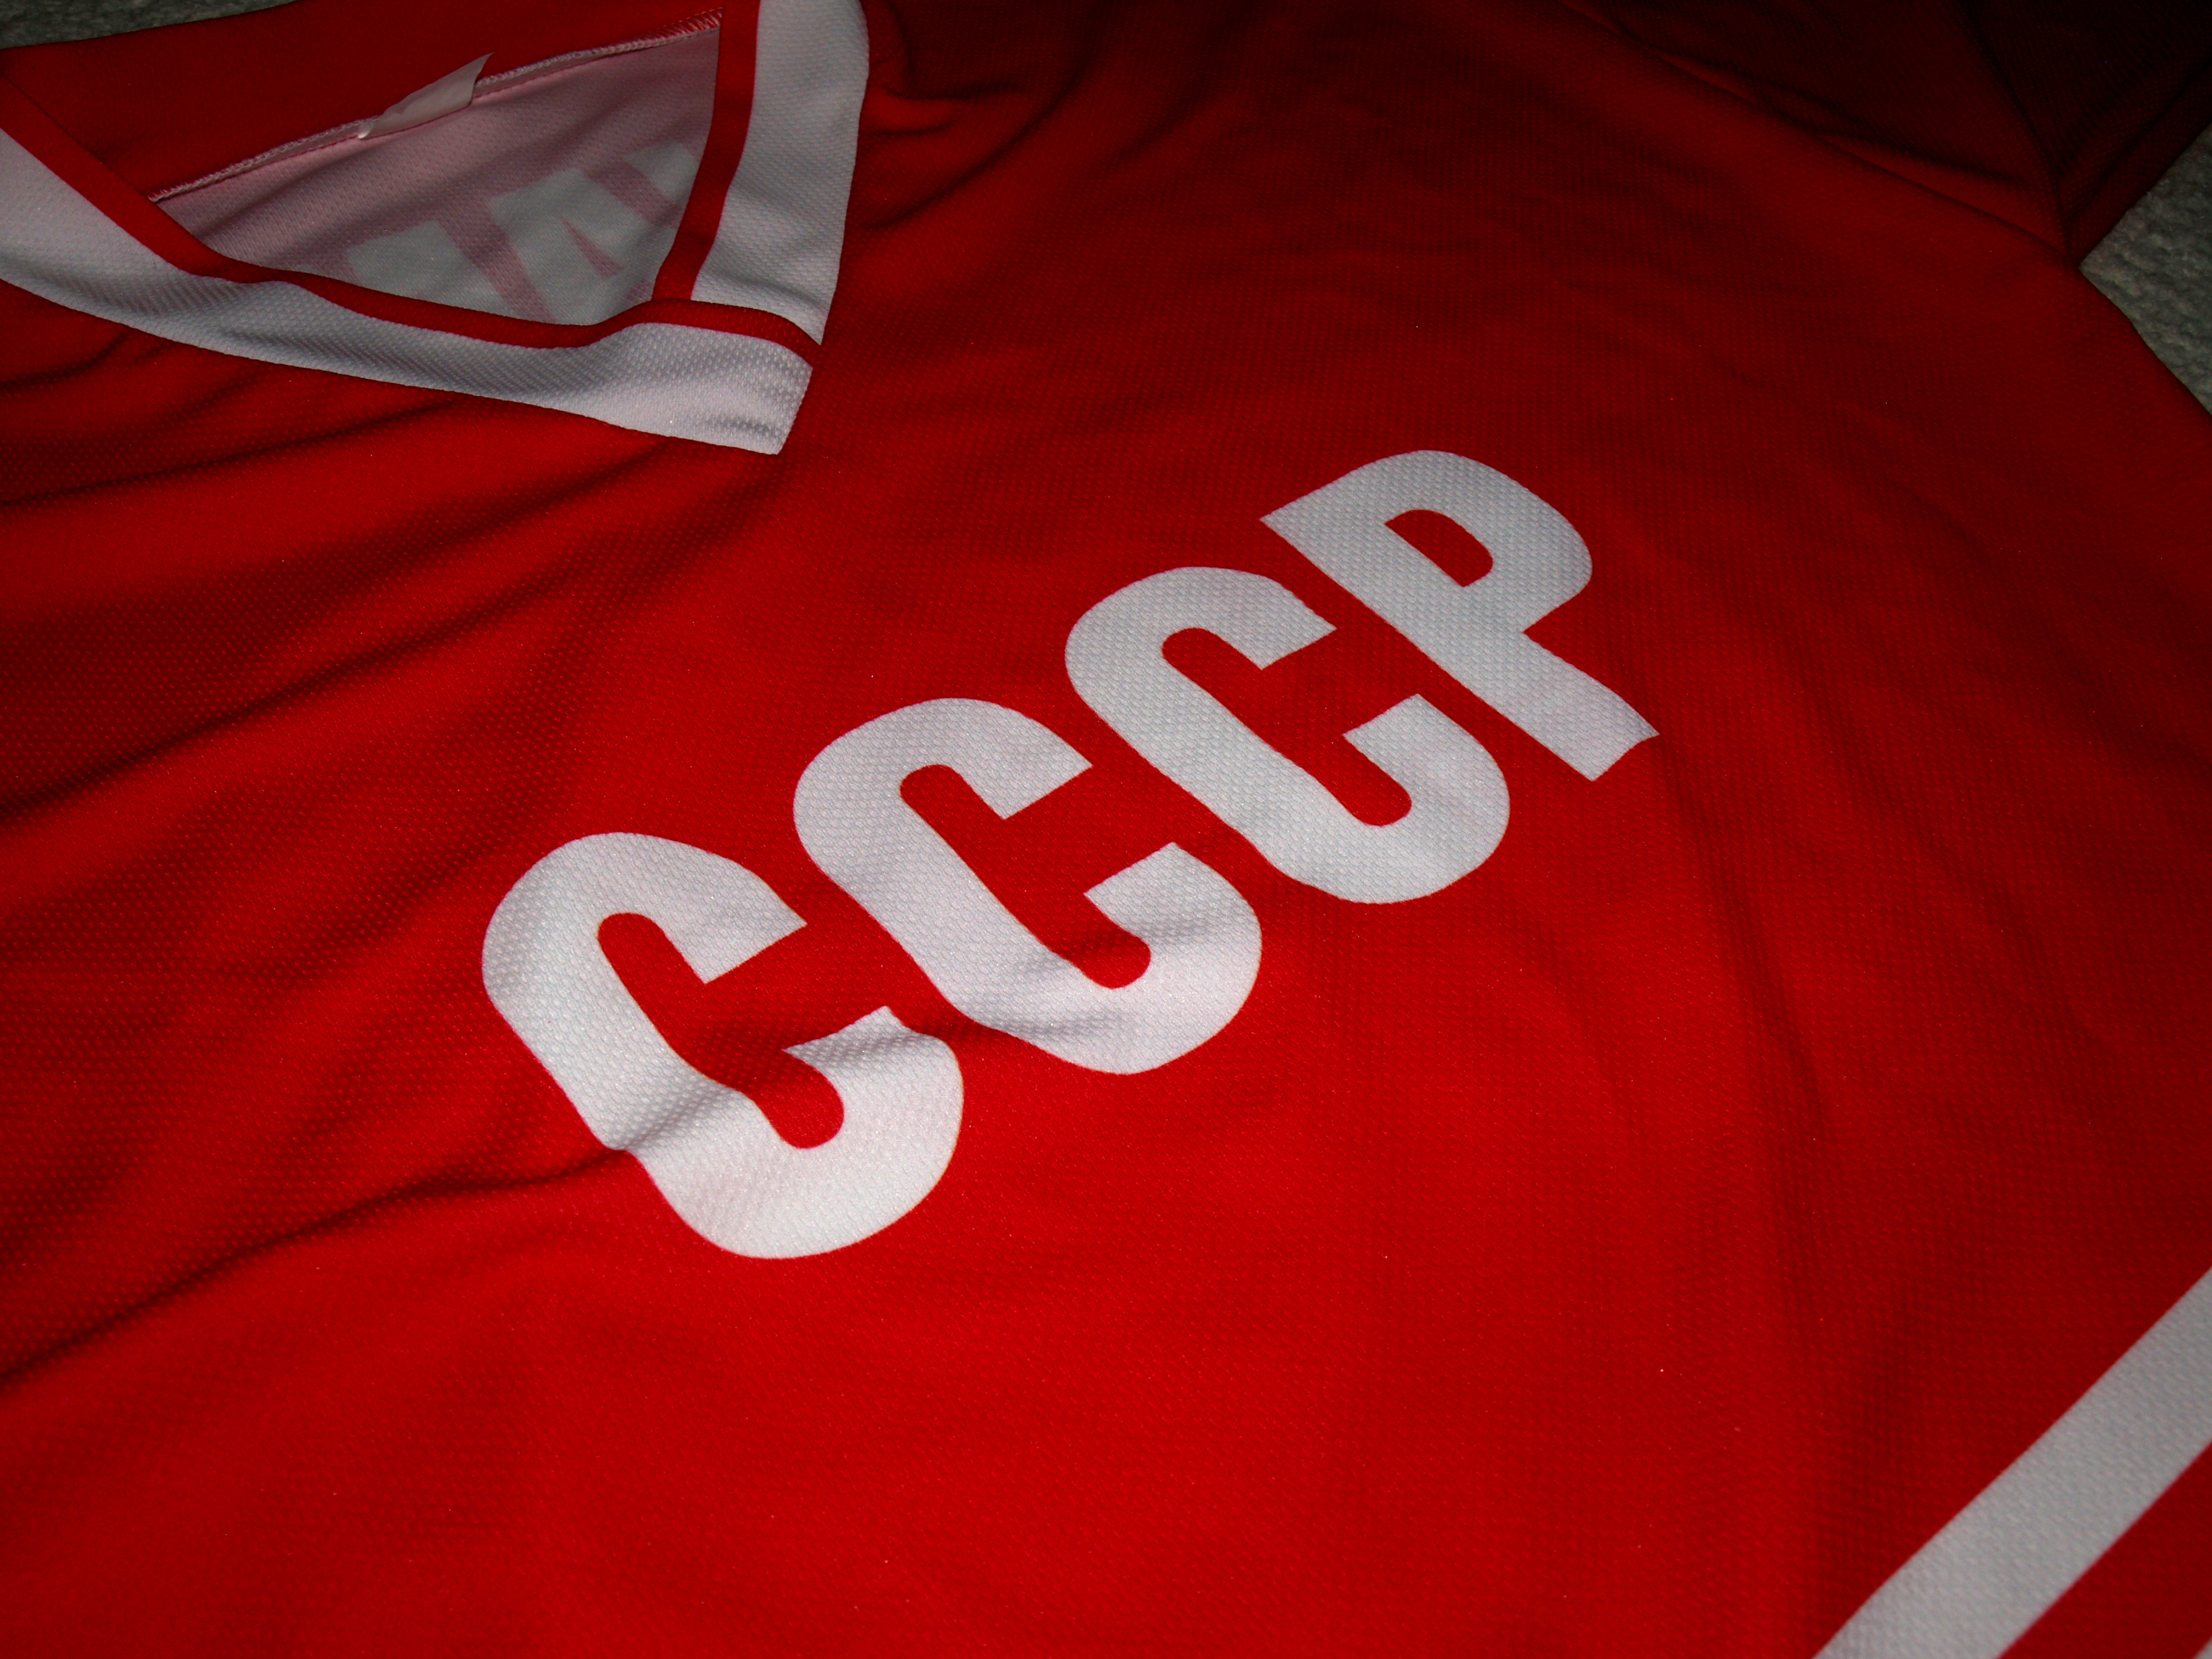 2e8479e9c File:CCCP text logo in Soviet Union national ice hockey team jersey.jpg